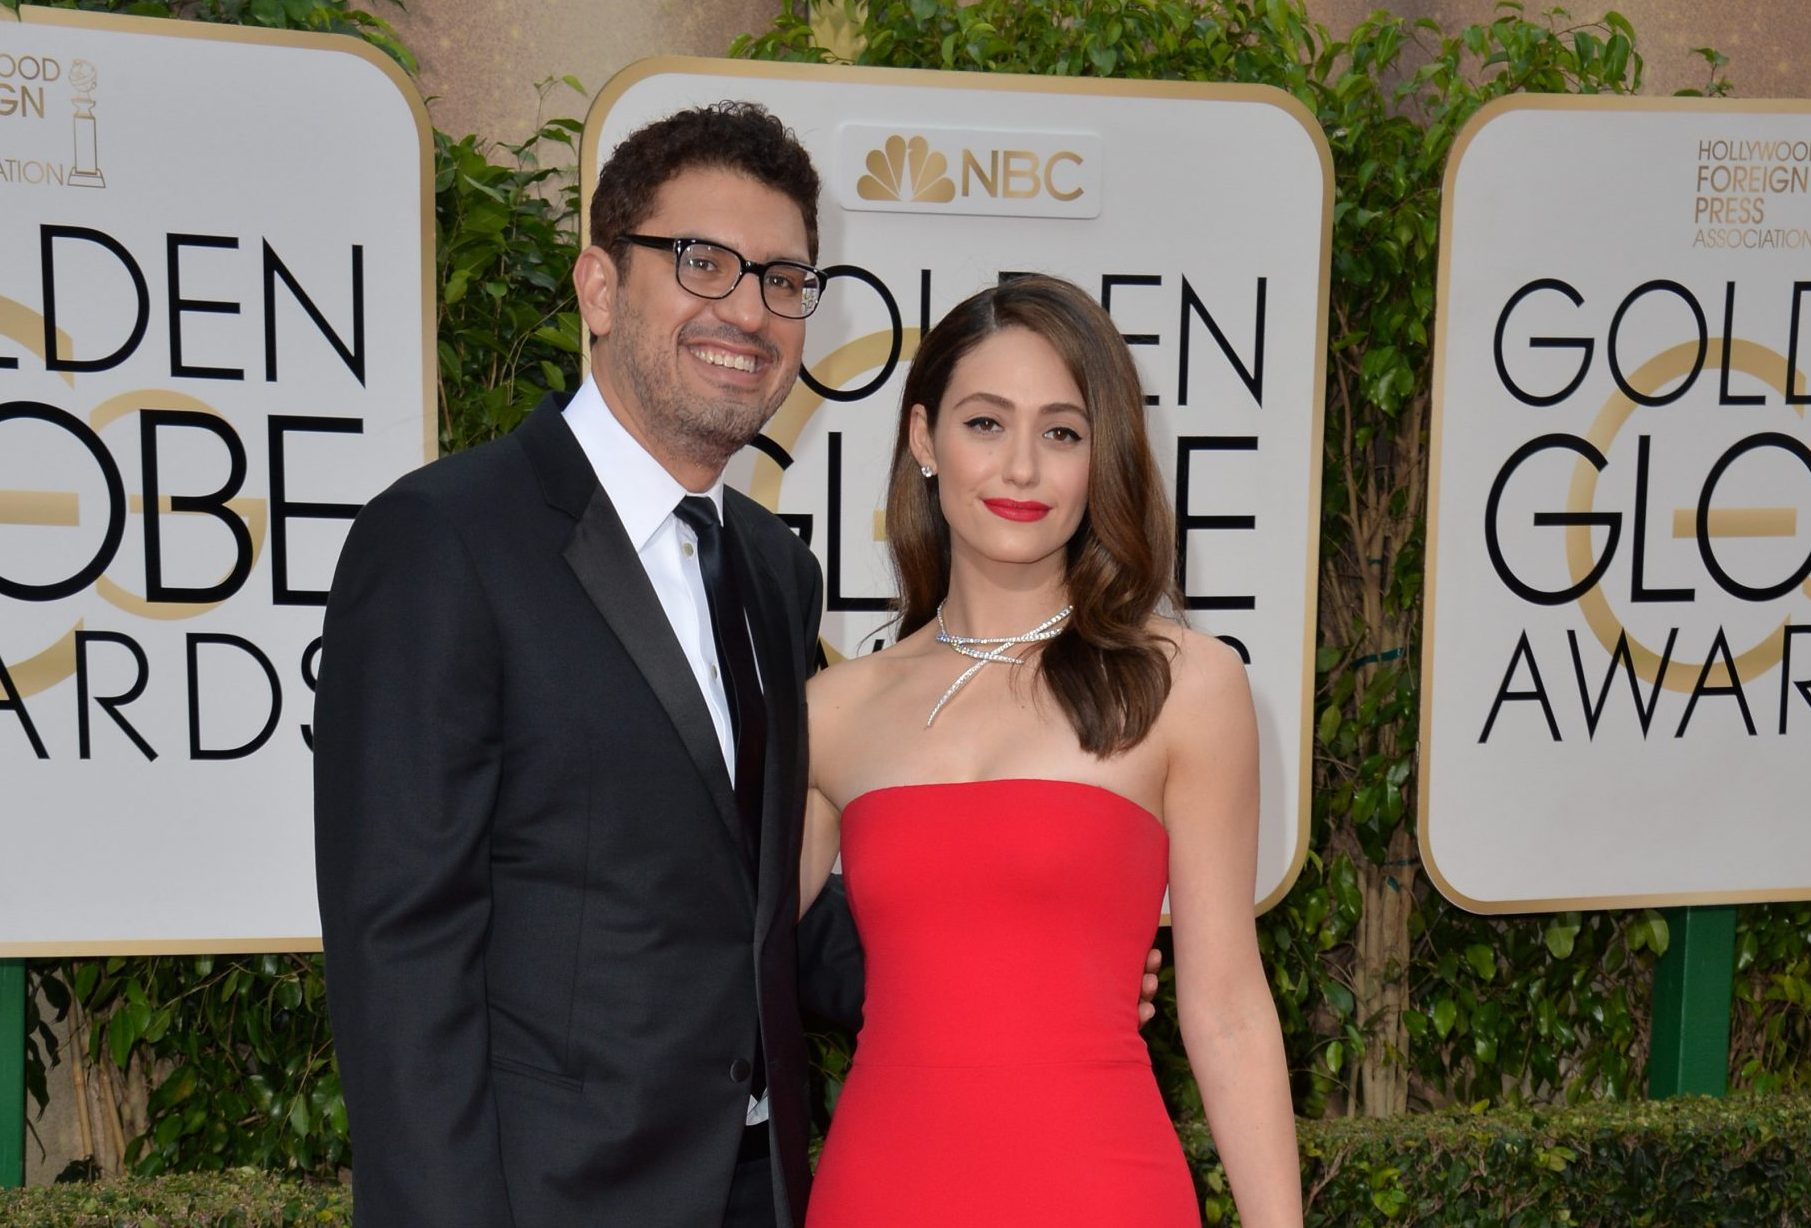 Sam Esmail and Emmy Rossum smile at a red carpet event. Emmy is wearing a stunning strapless red dress and wears matching red lipstick.